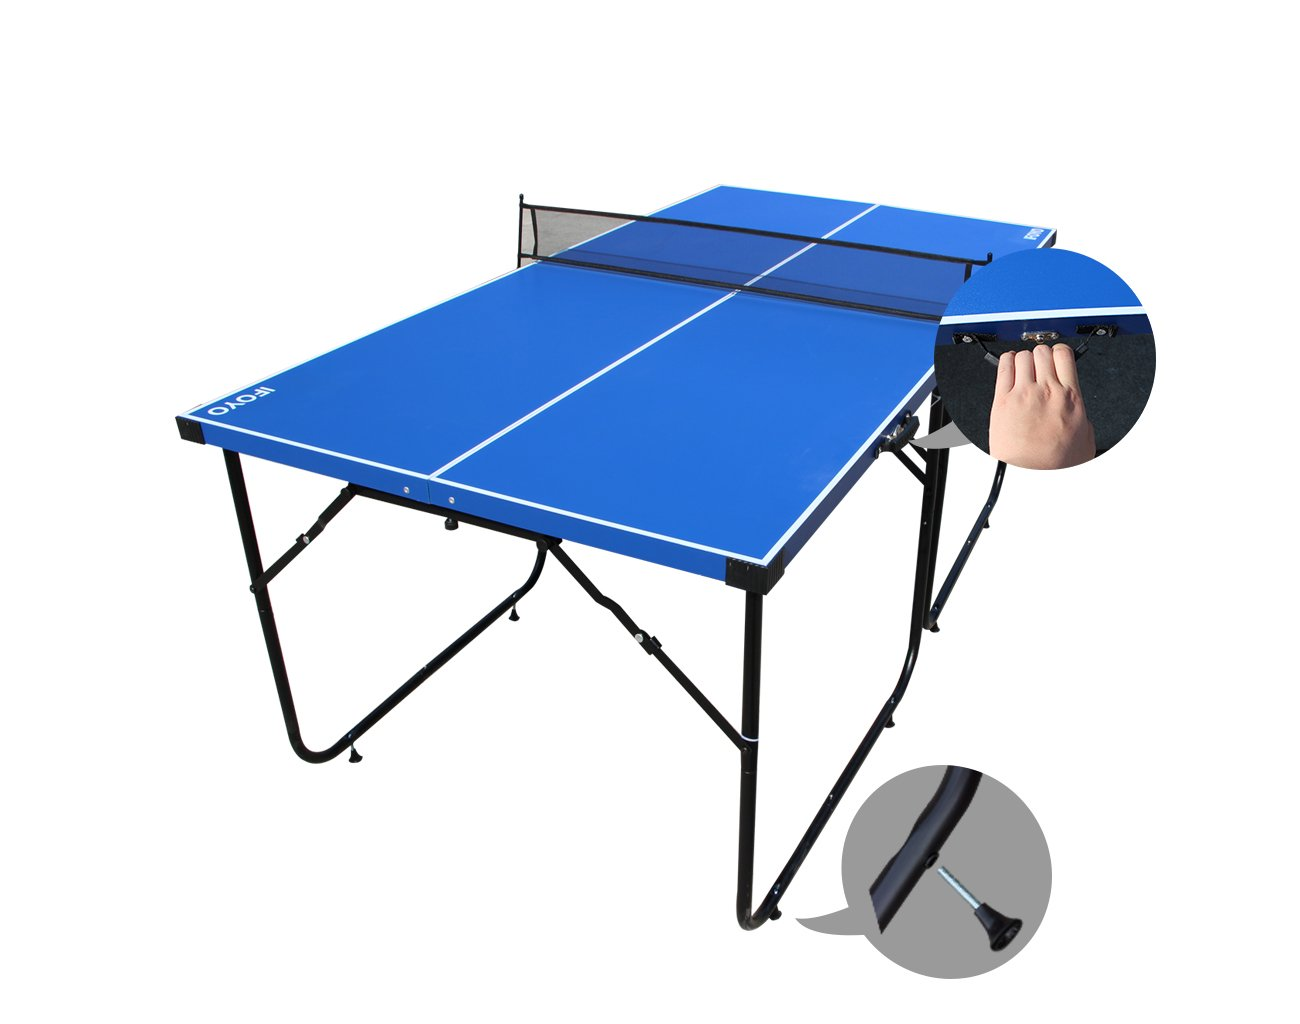 Table Tennis Table Midsize Ping Pong Table 6ft Compact